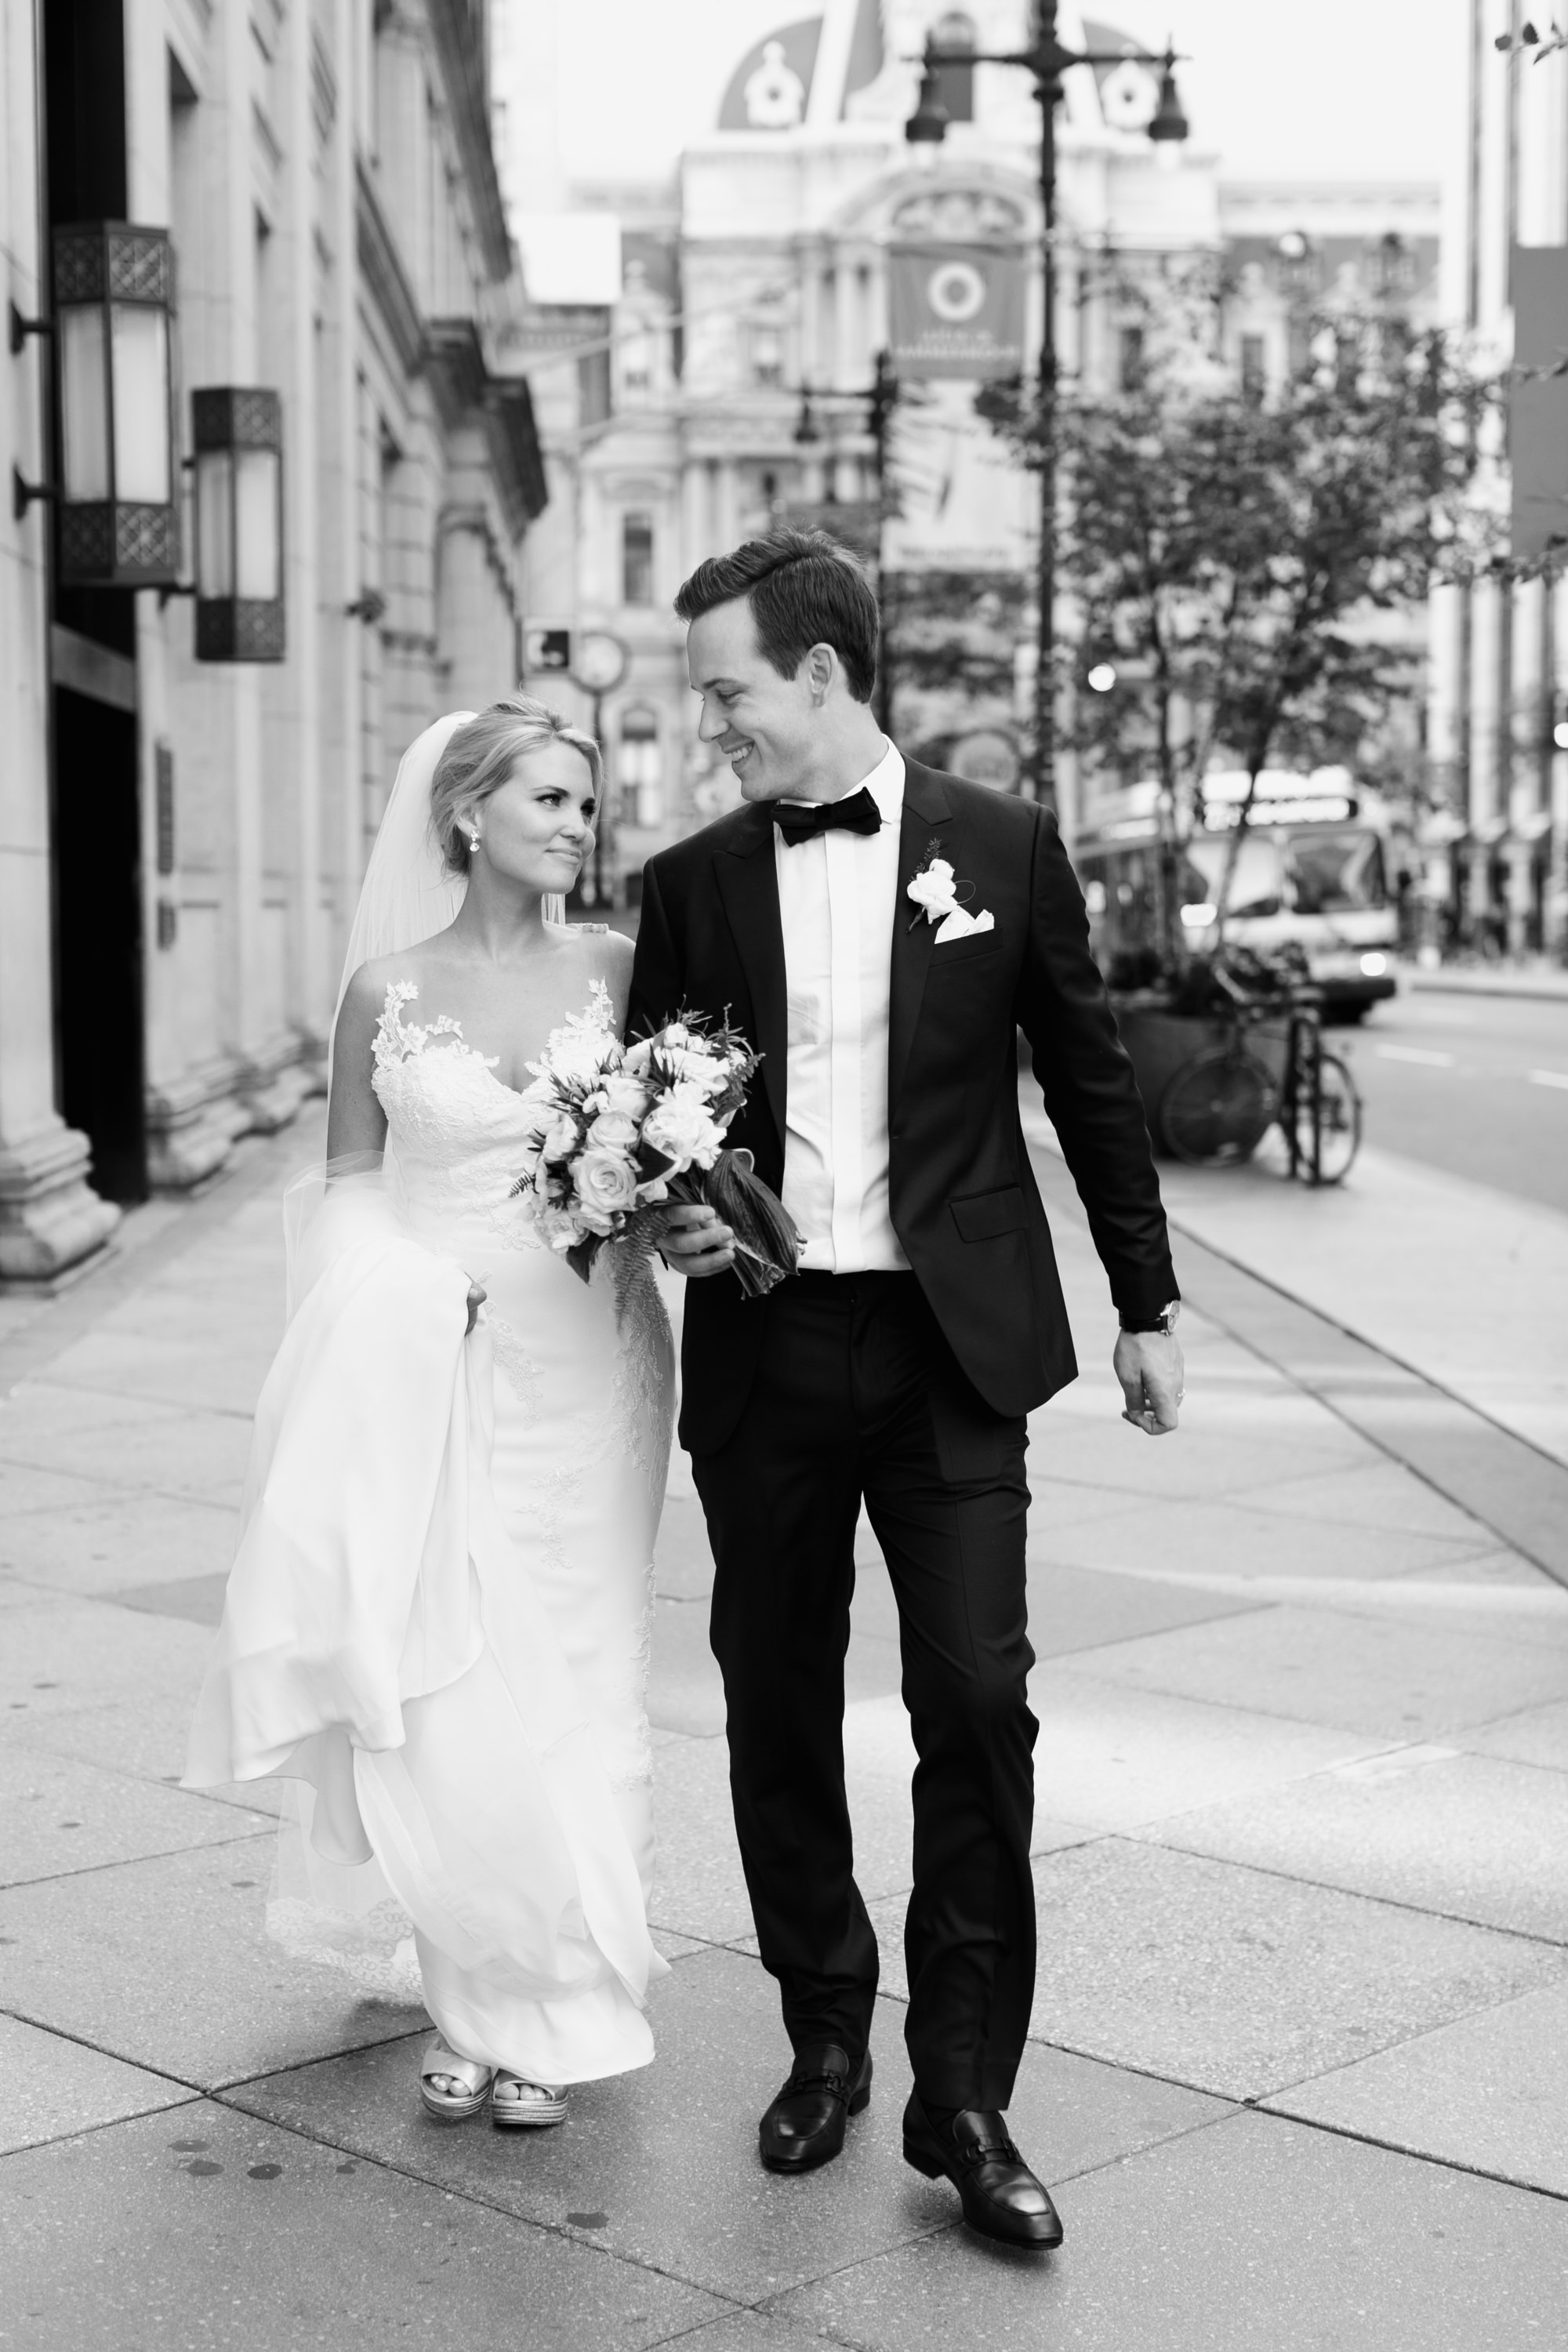 photography-wedding-weddings-natural-candid-union league-philadelphia-black tie-city hall-broad street-editorial-modern-fine-art-09.JPG